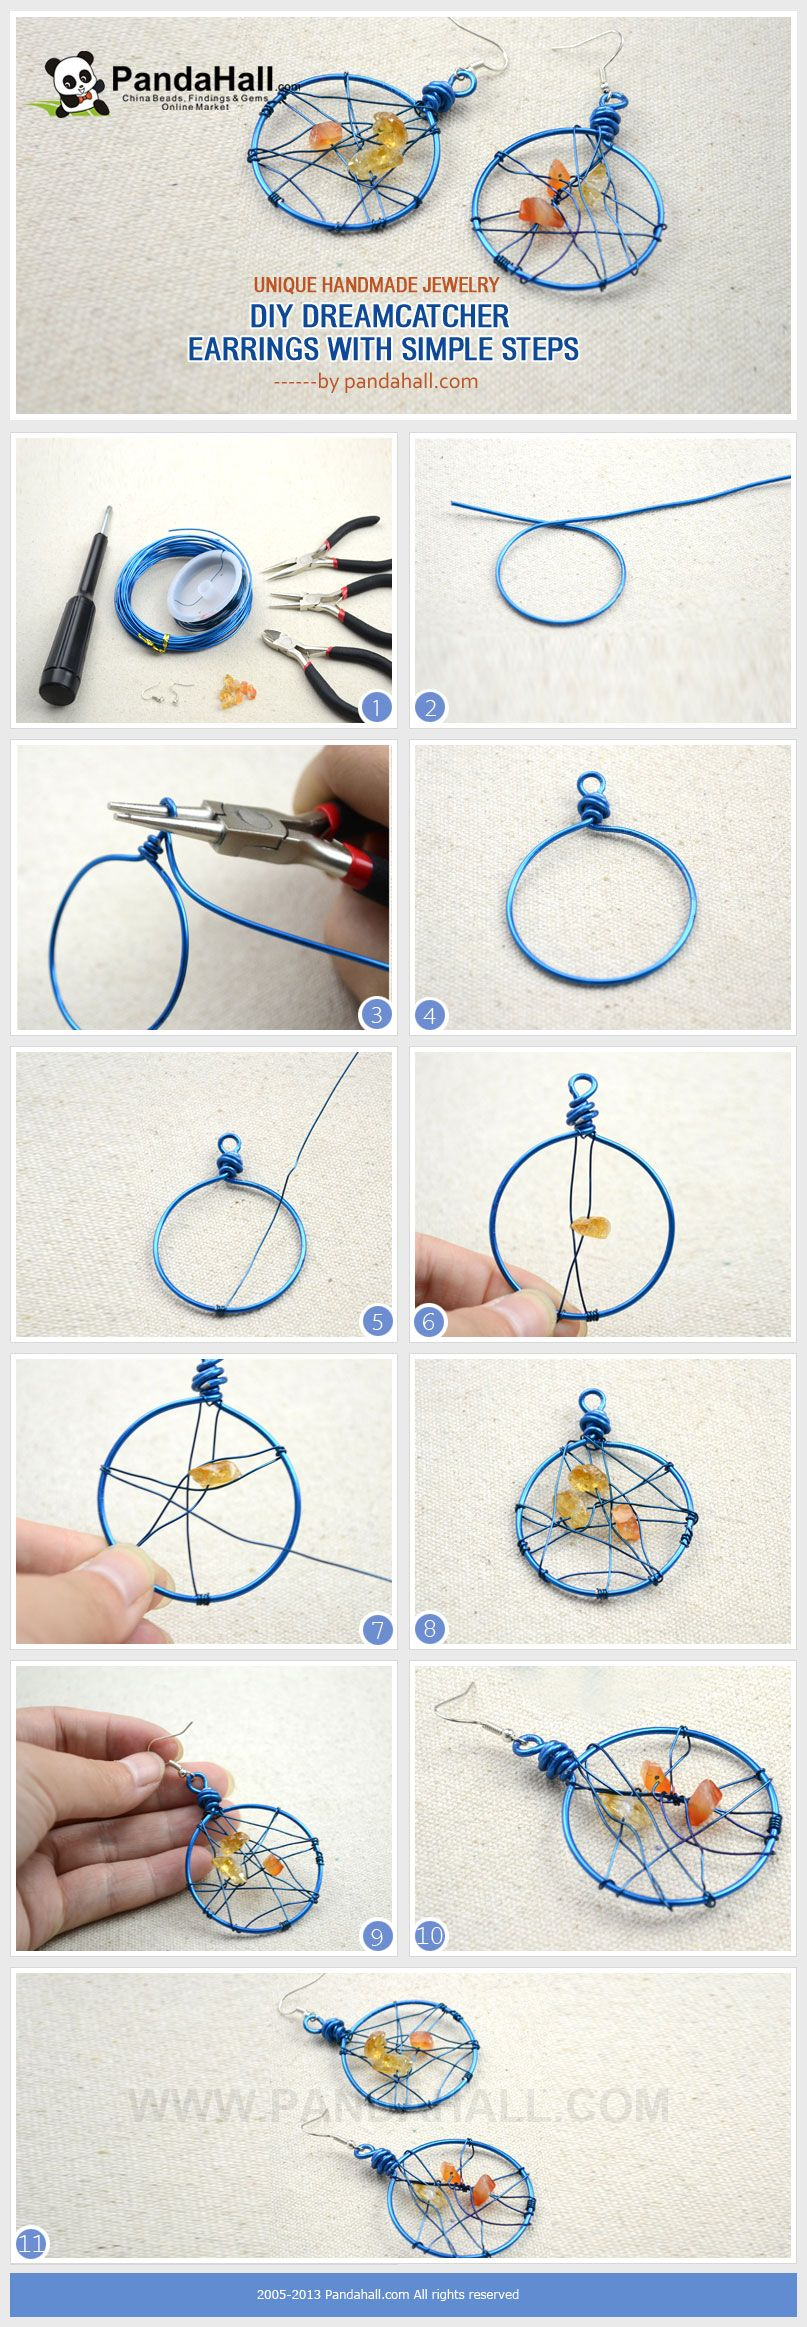 Unique handmade jewelry diy dreamcatcher earrings in 3 for How to make dream catchers easy